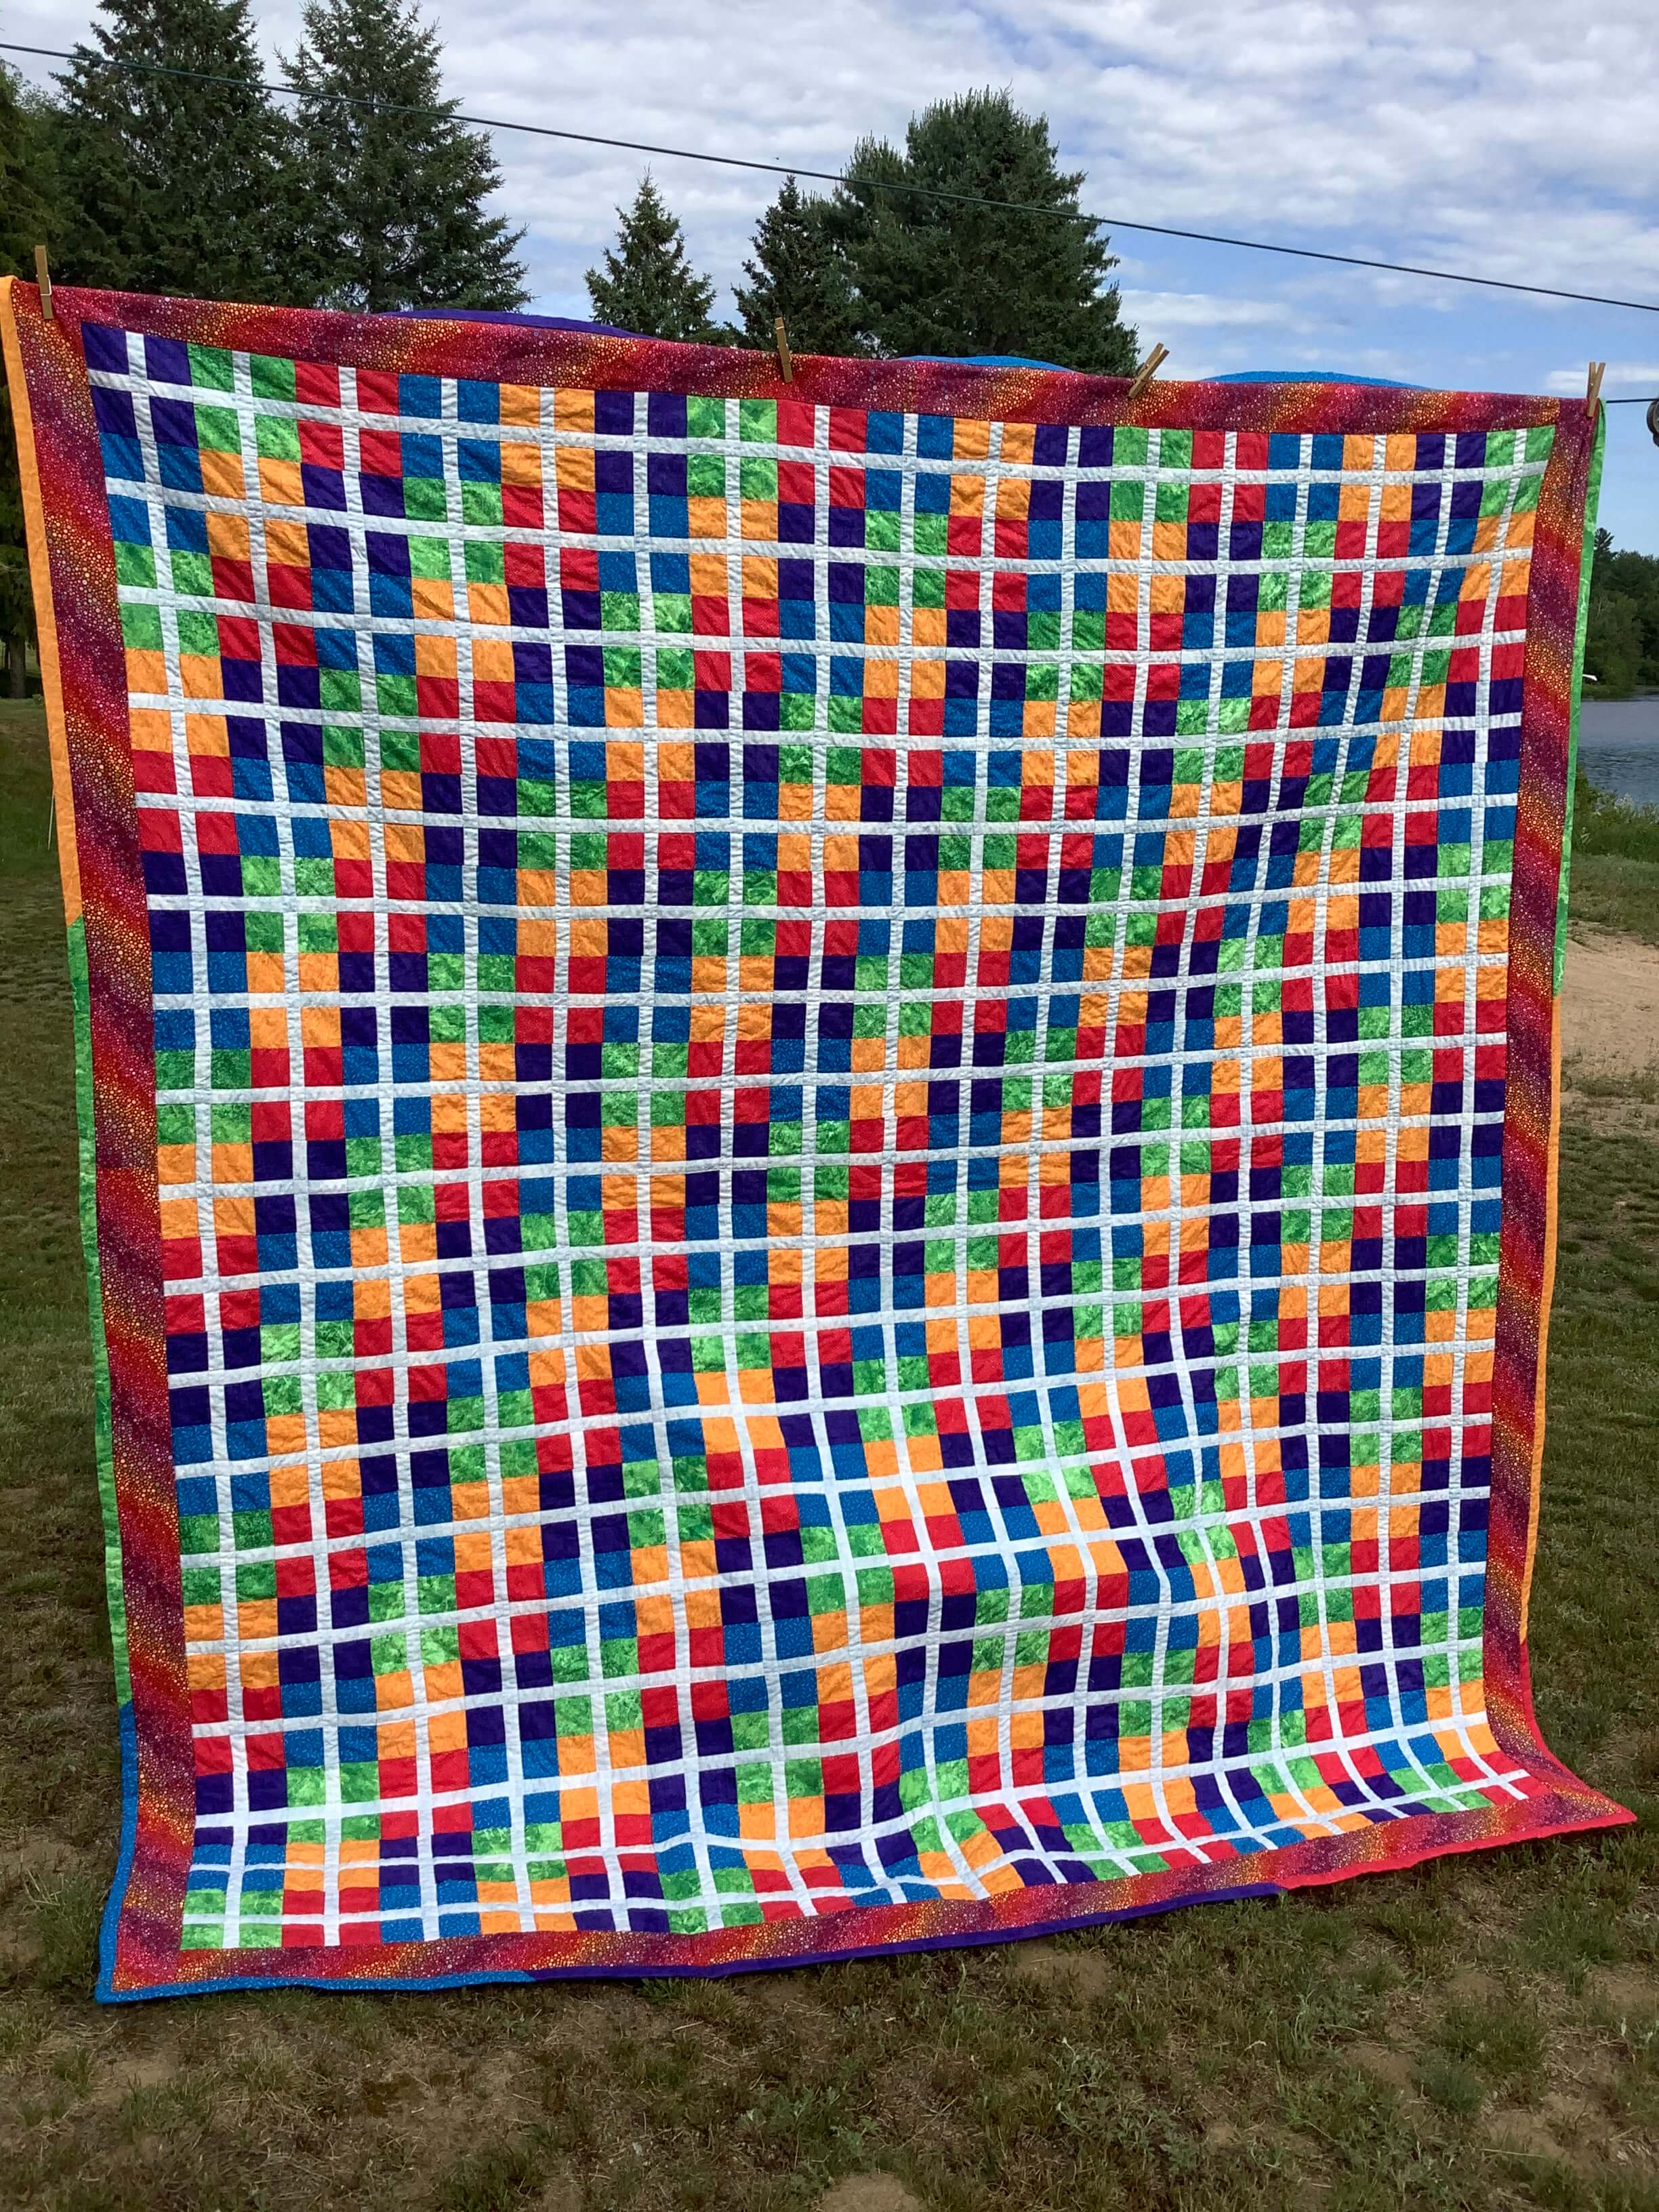 a quilt with young quilt pattern by Stich and a Round hanging on a clothline